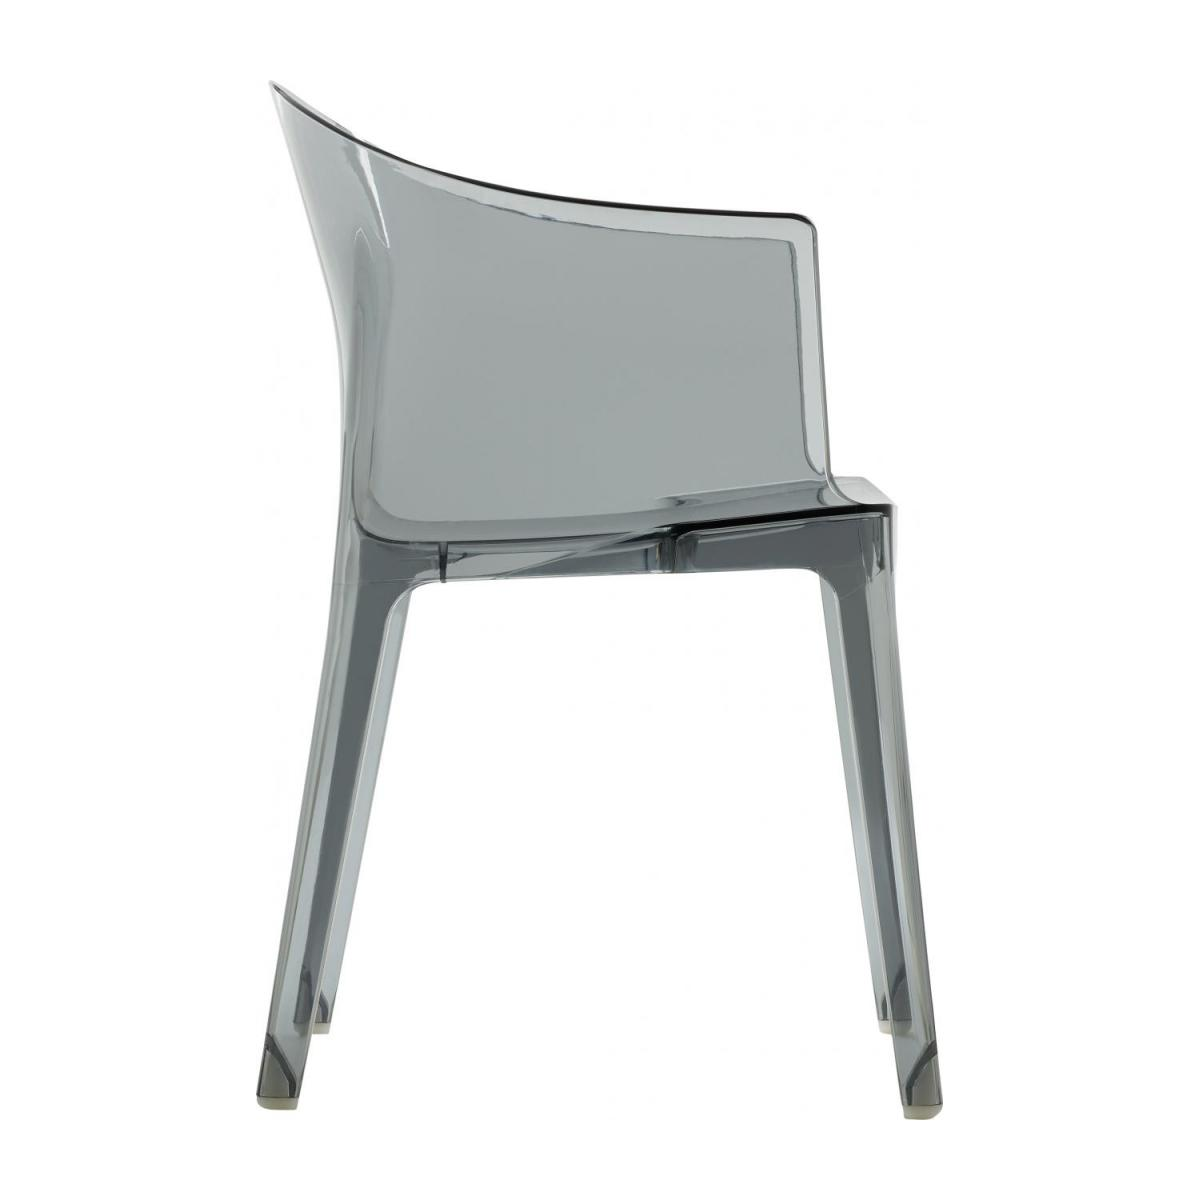 Smokey grey armchair in polycarbonate n°5